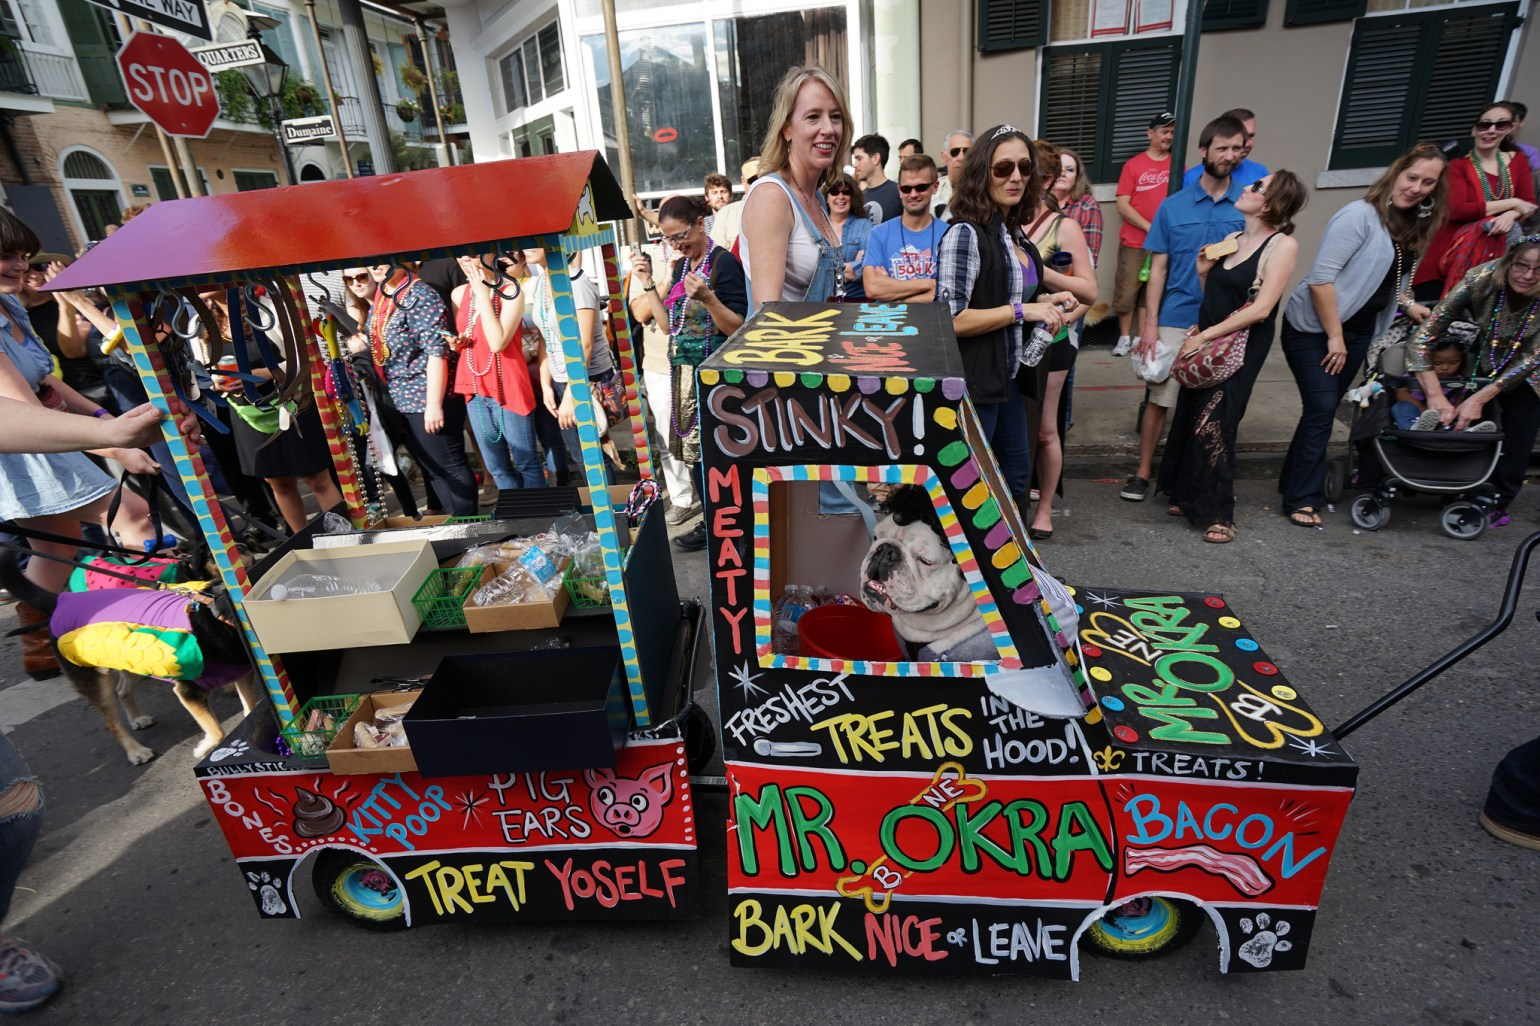 A dog dressed as beloved local character Mr. Okra at a recent Barkus parade. (Photo: Paul Broussard)